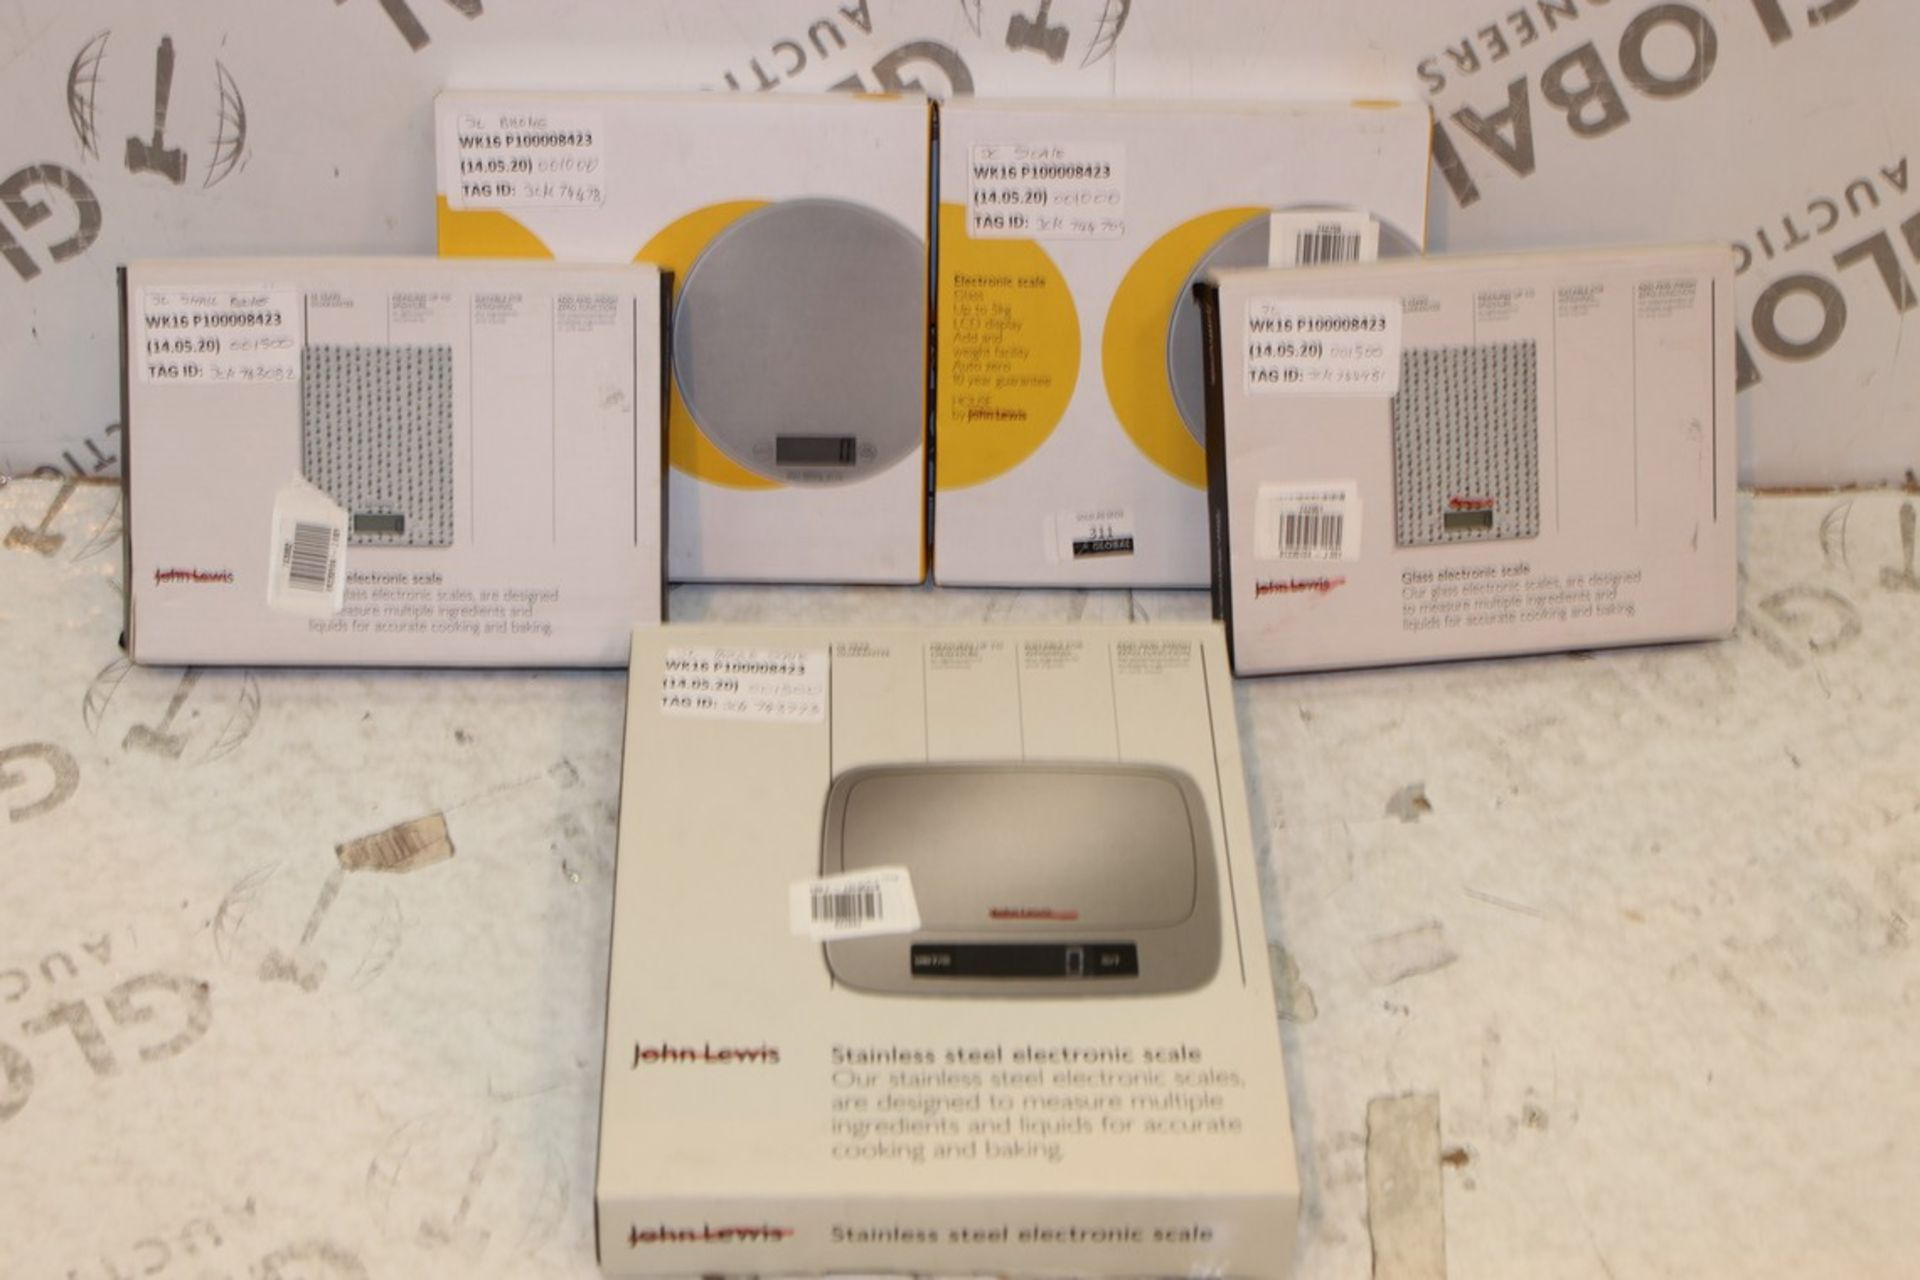 Lot 311 - Boxed Pairs Of John Lewis And Partners Digital Electronic Weighing Scales RRP £15 Each (743773) (